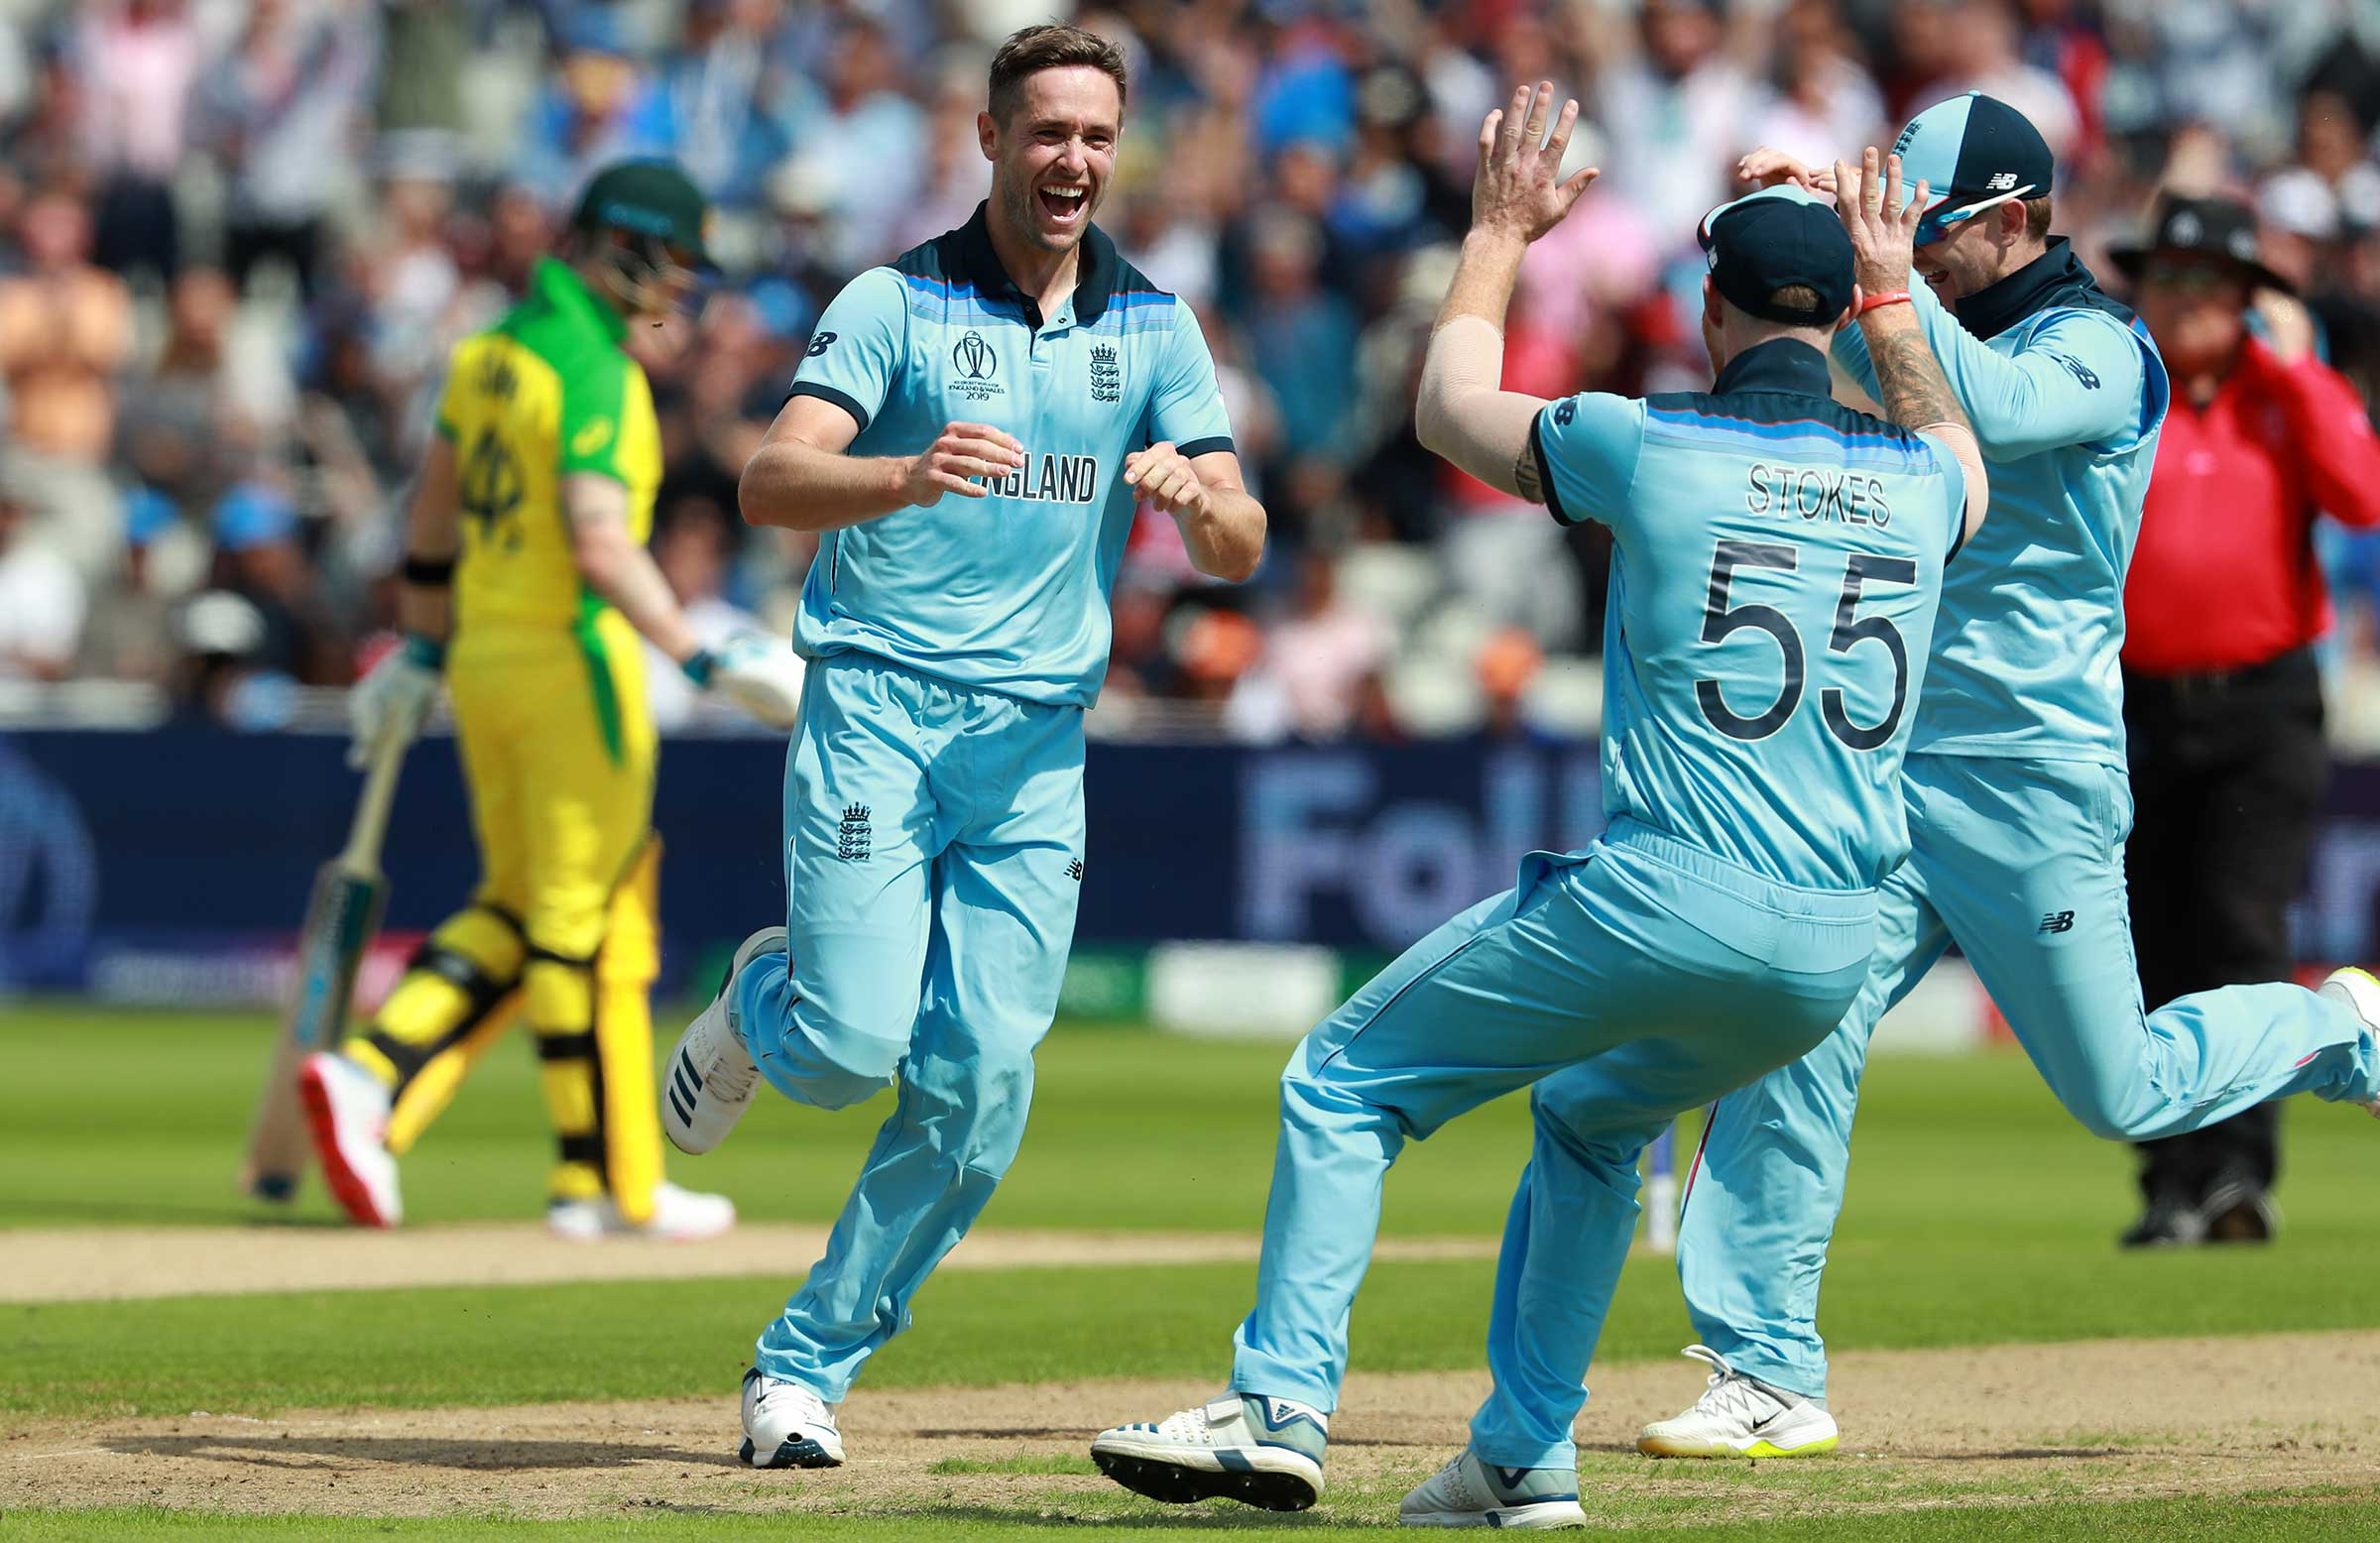 Chris Woakes celebrates an early wicket // Getty